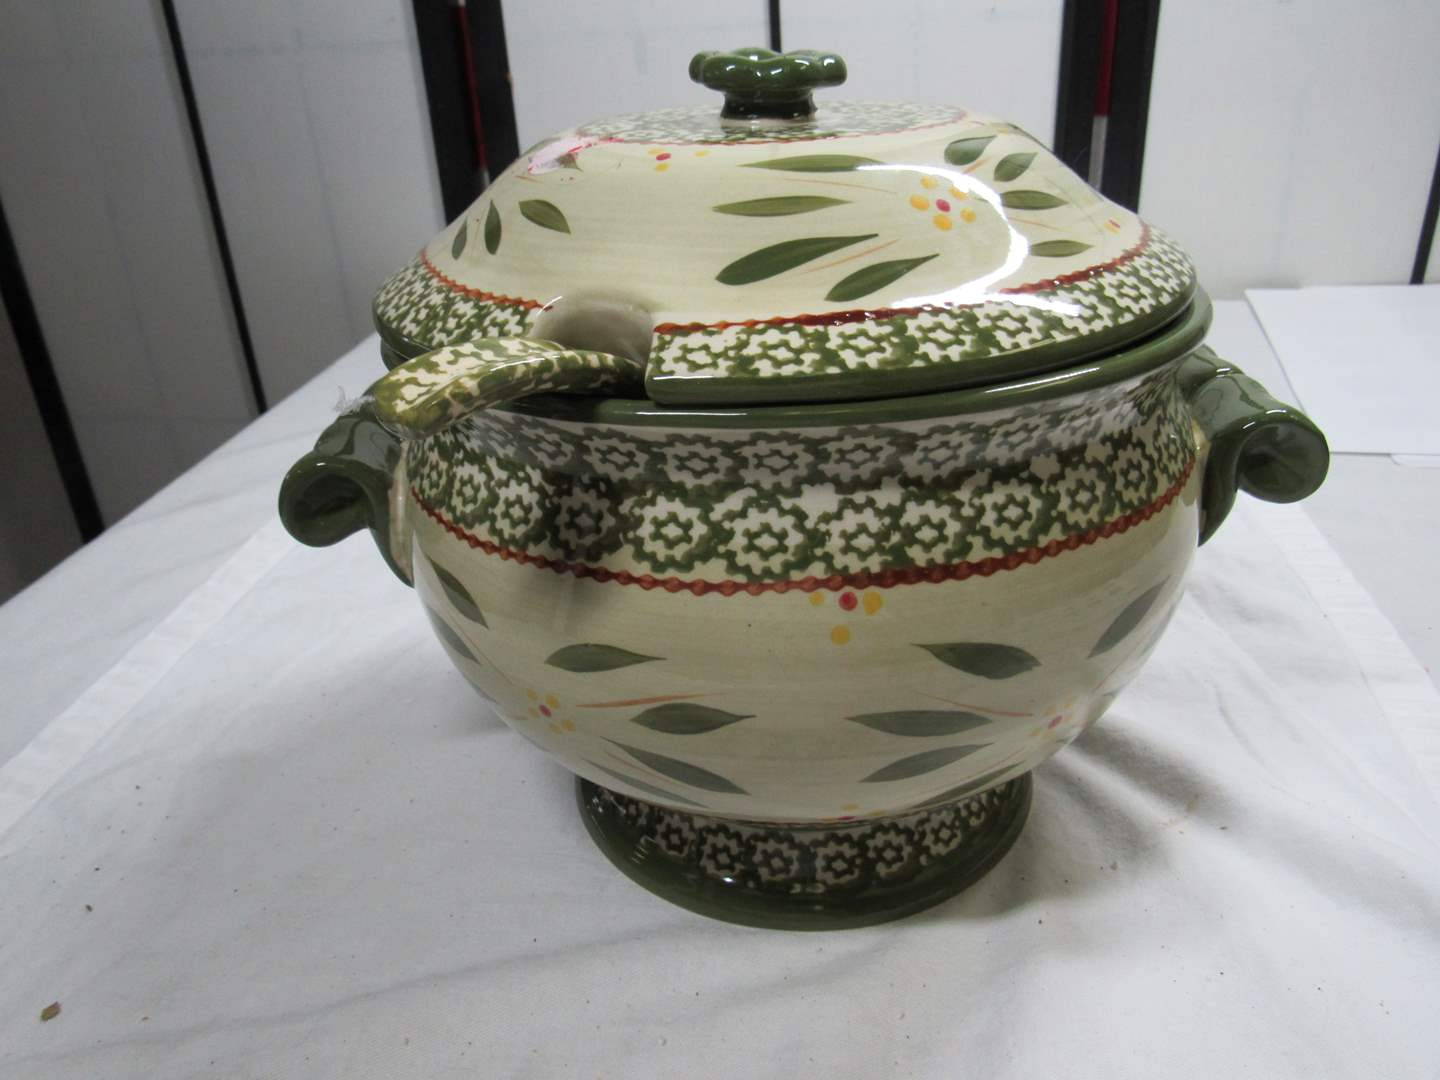 Lot # 84 Great TempTations covered tureen w/ladle perfect condition (main image)